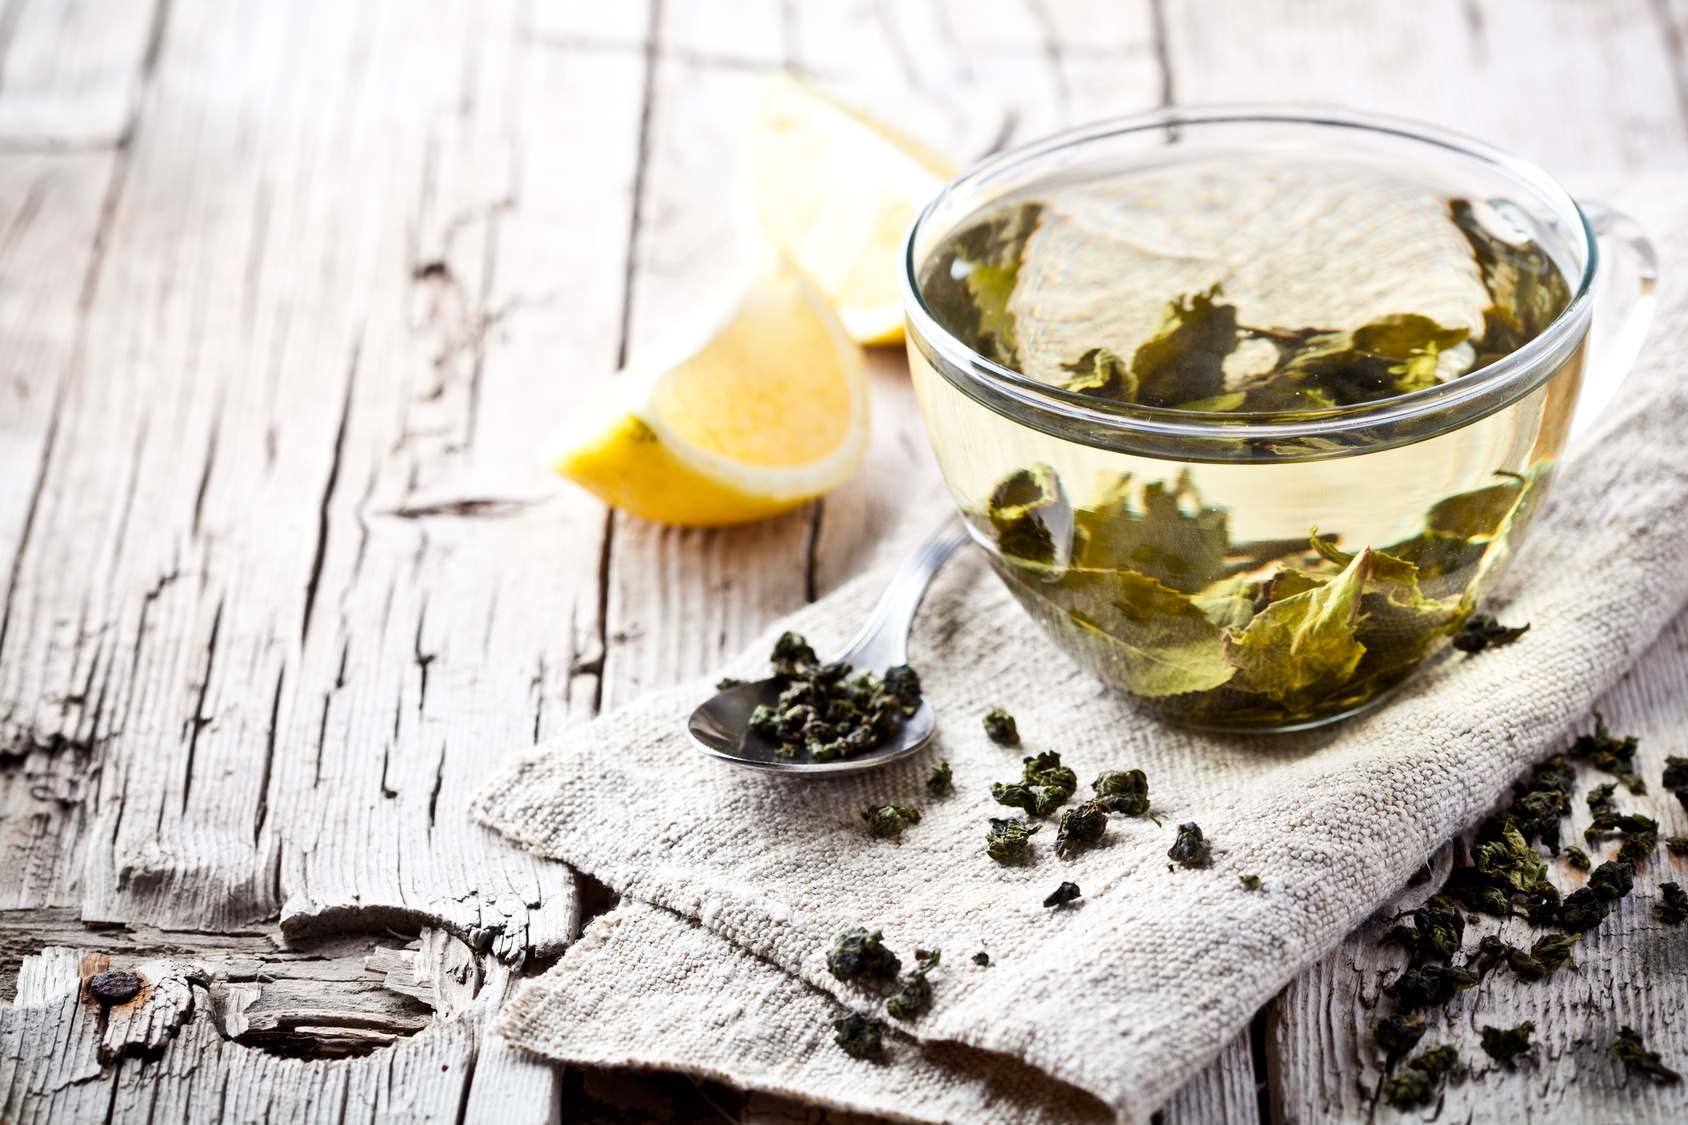 Green Tea Ingredients Targets Oral Cancer Cells